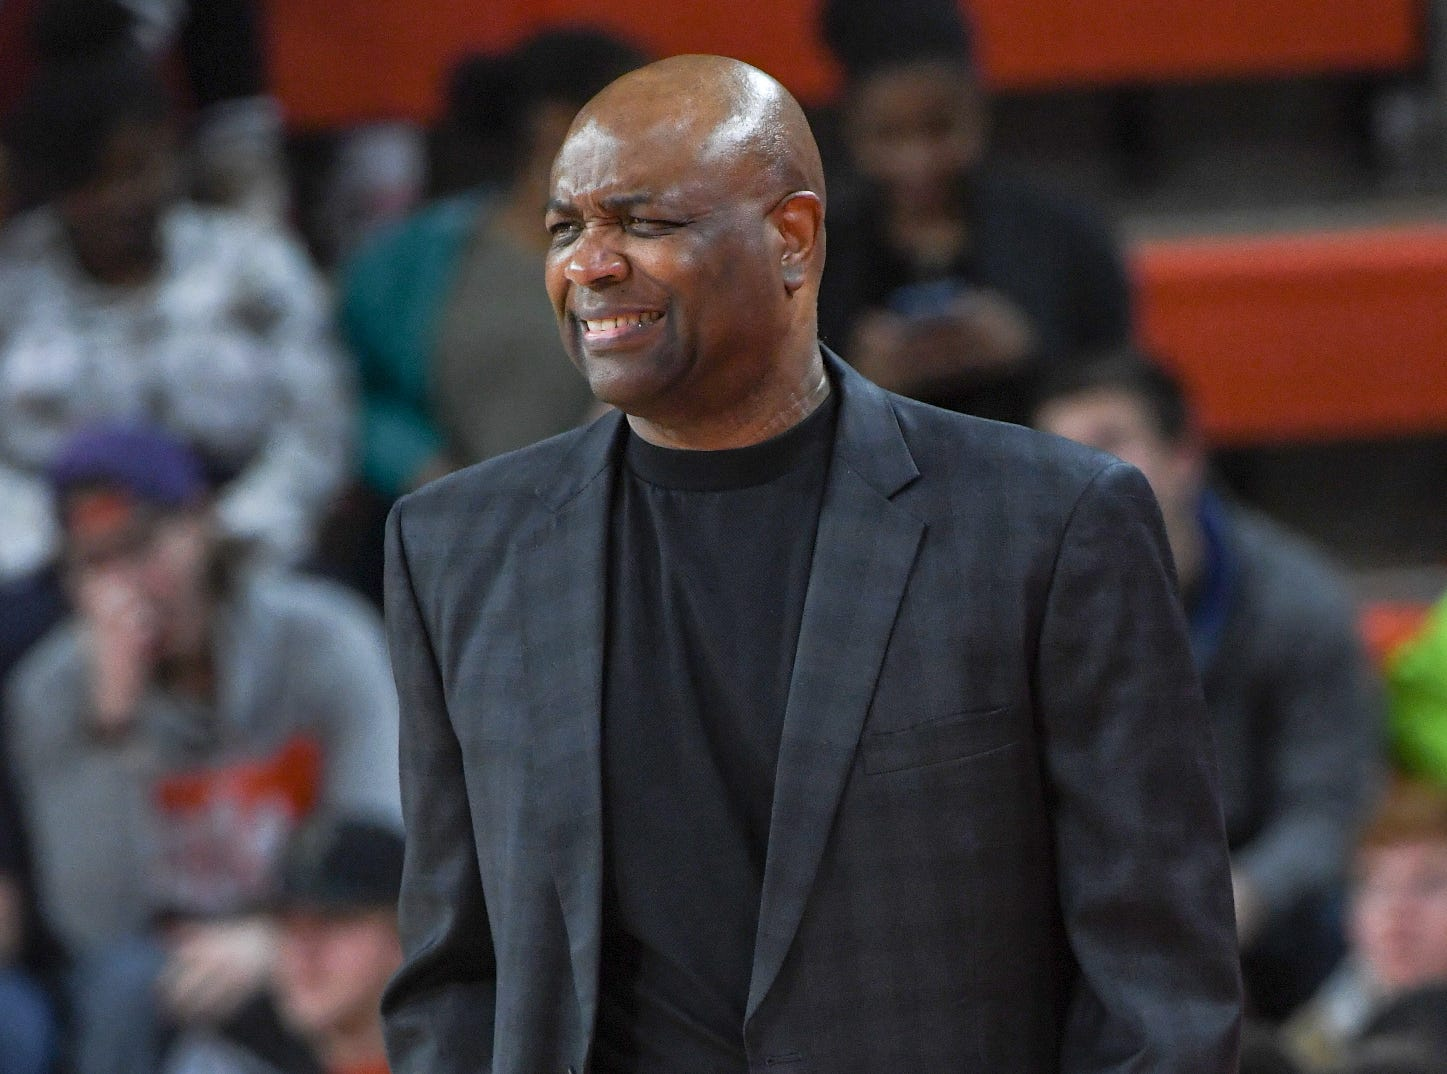 Florida State Leonard Hamilton during the second half at Littlejohn Coliseum in Clemson Tuesday, February 19, 2019.